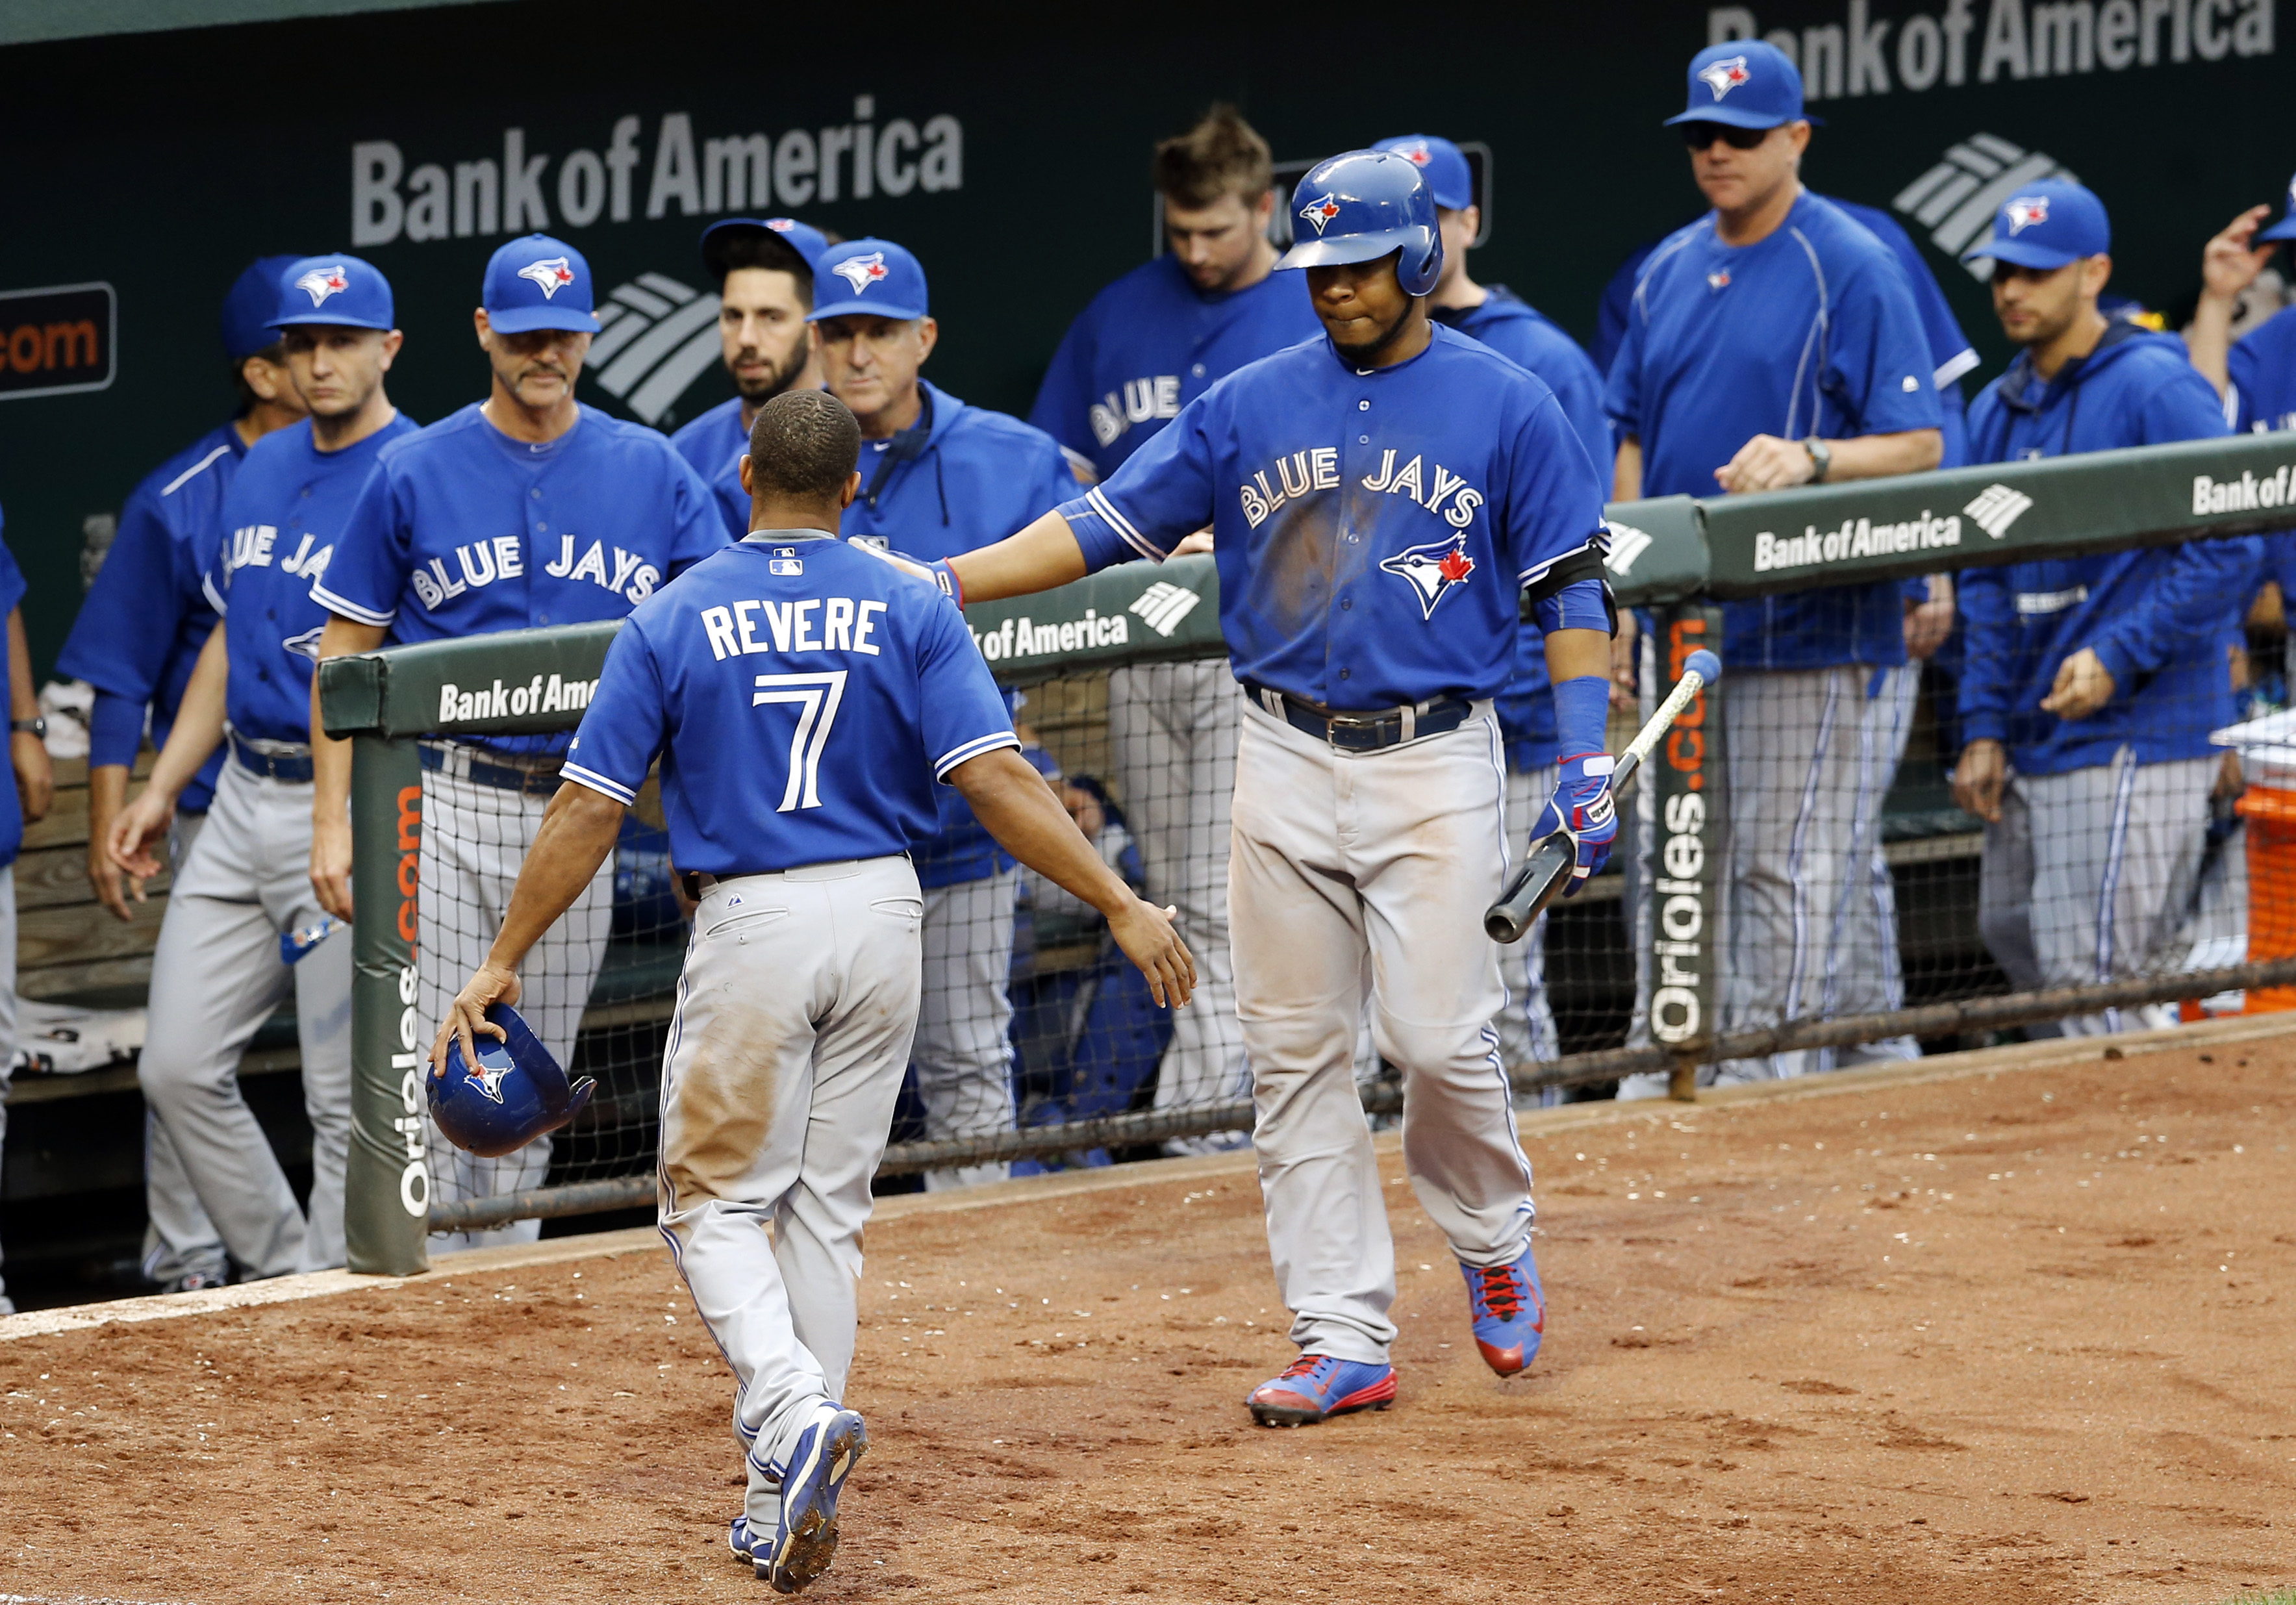 Toronto Blue Jays' Ben Revere (7) celebrates with teammate Edwin Encarnacion after scoring on a double by Josh Donaldson in the fifth inning in the first baseball game of a doubleheader against the Baltimore Orioles, Wednesday, Sept. 30, 2015, in Baltimor